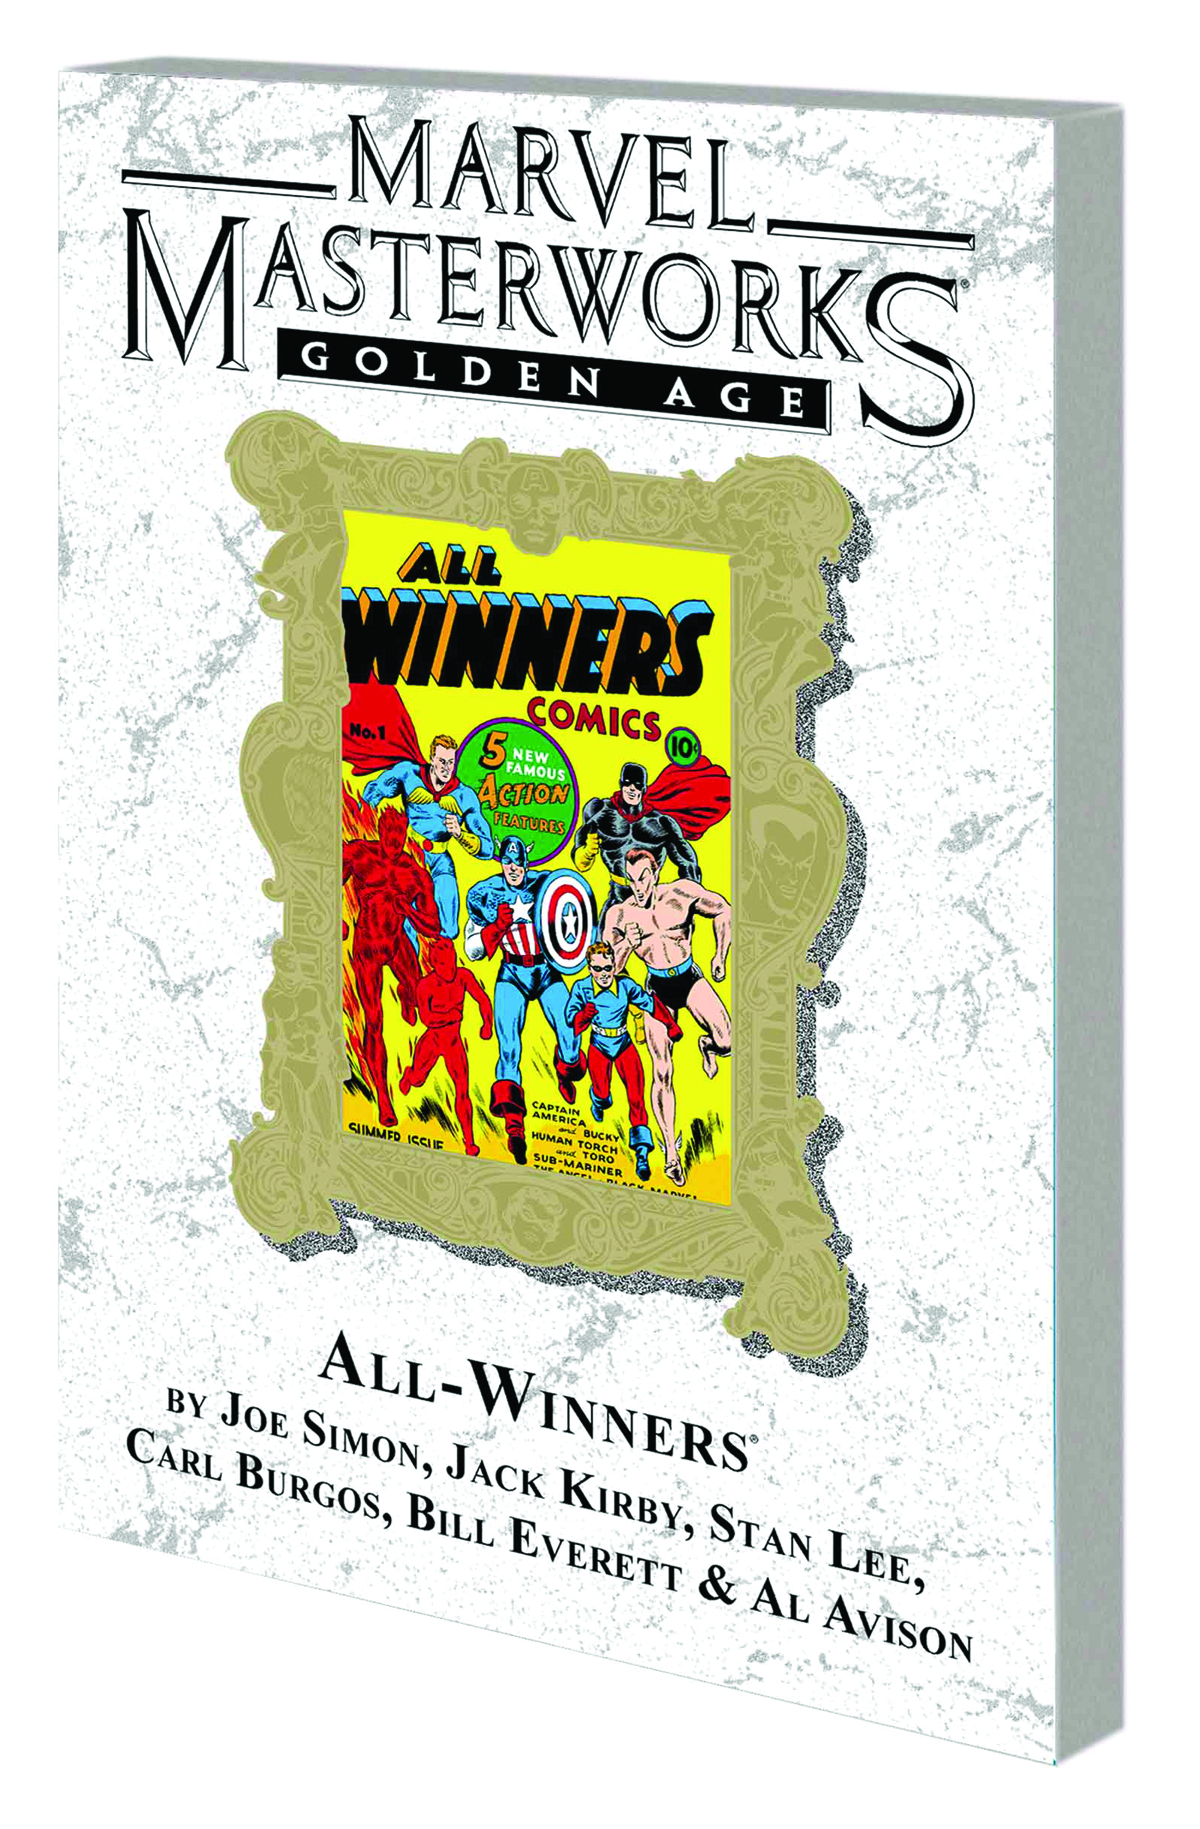 MMW GOLDEN AGE ALL WINNERS TP VOL 01 DM VAR ED 55